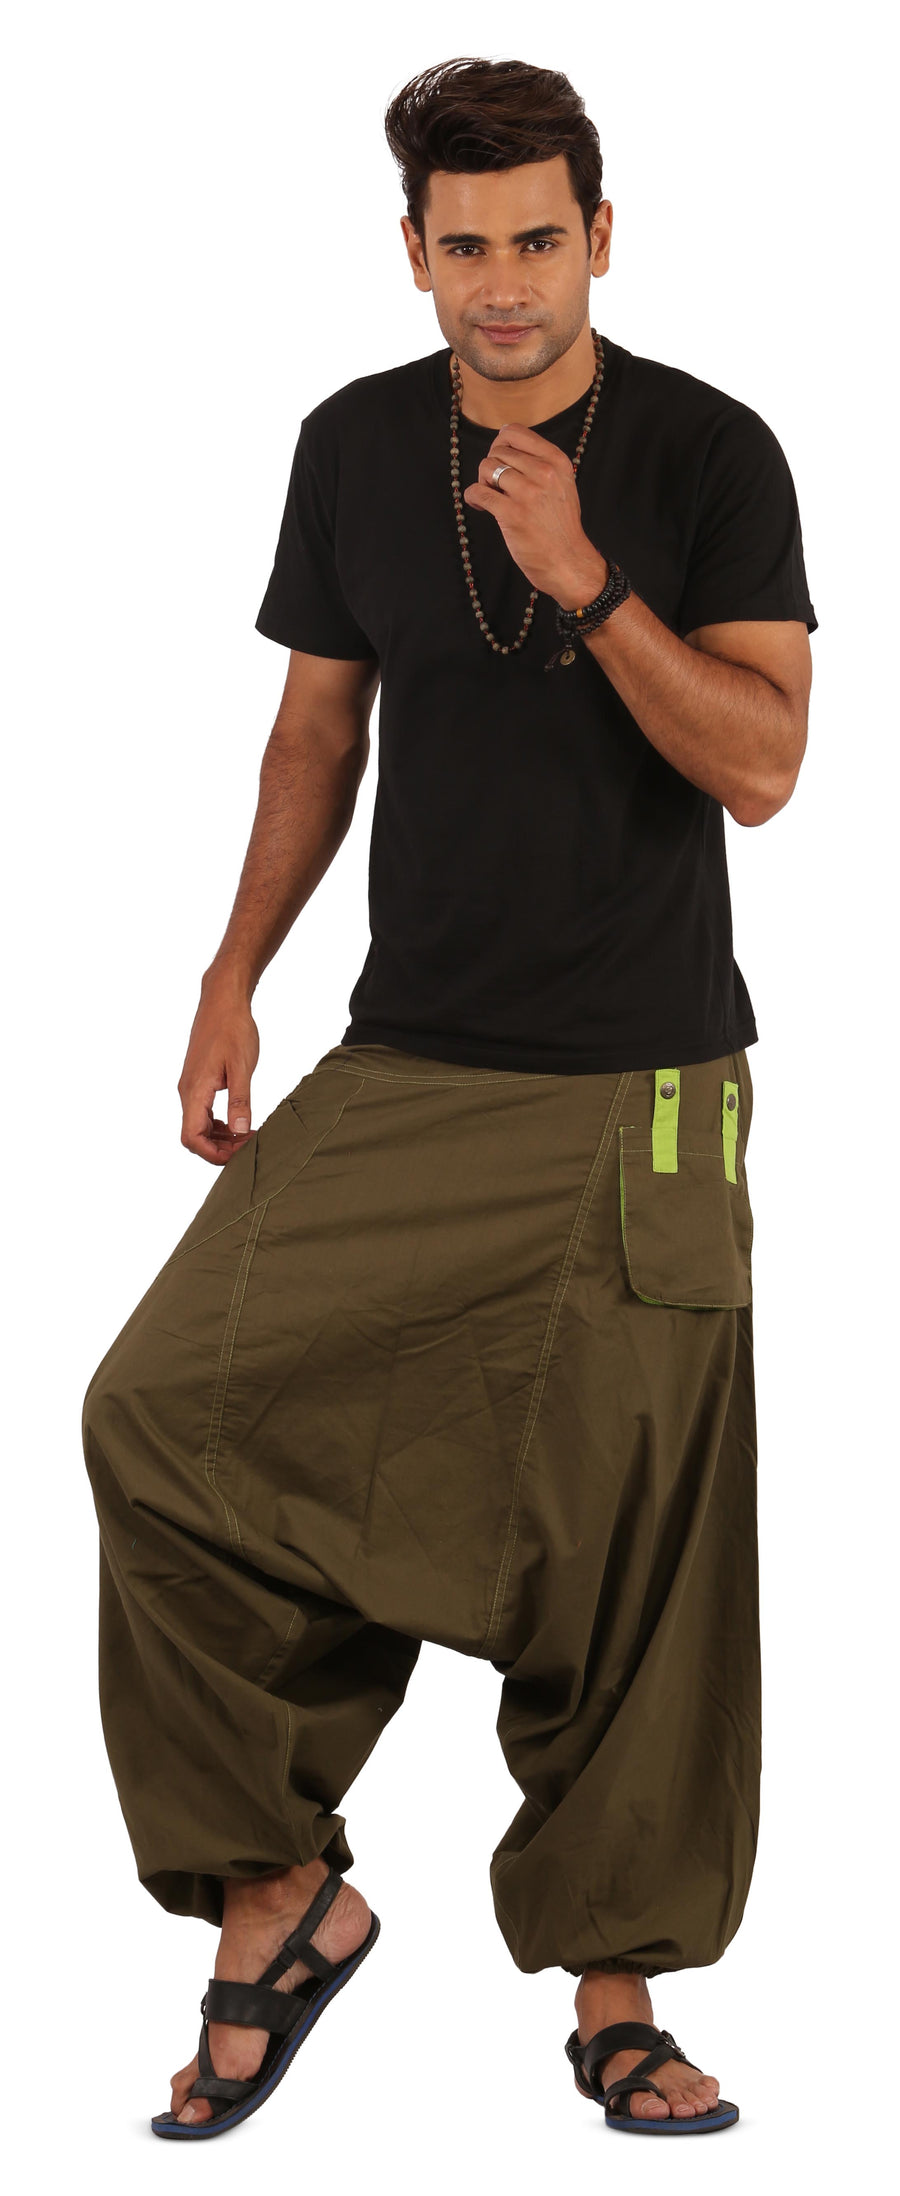 Harem Pants, Khaki Harem Pants, Show me some Mens Harem Pants, Show me some Womens Harem Pants, What is a harem pant, Show me some baggy pants, I want to buy harem pants, cool harem pants, Wide leg harem Pants, Cheap Harem Pants, Show me best harem pants, Highly rated Harem Pants